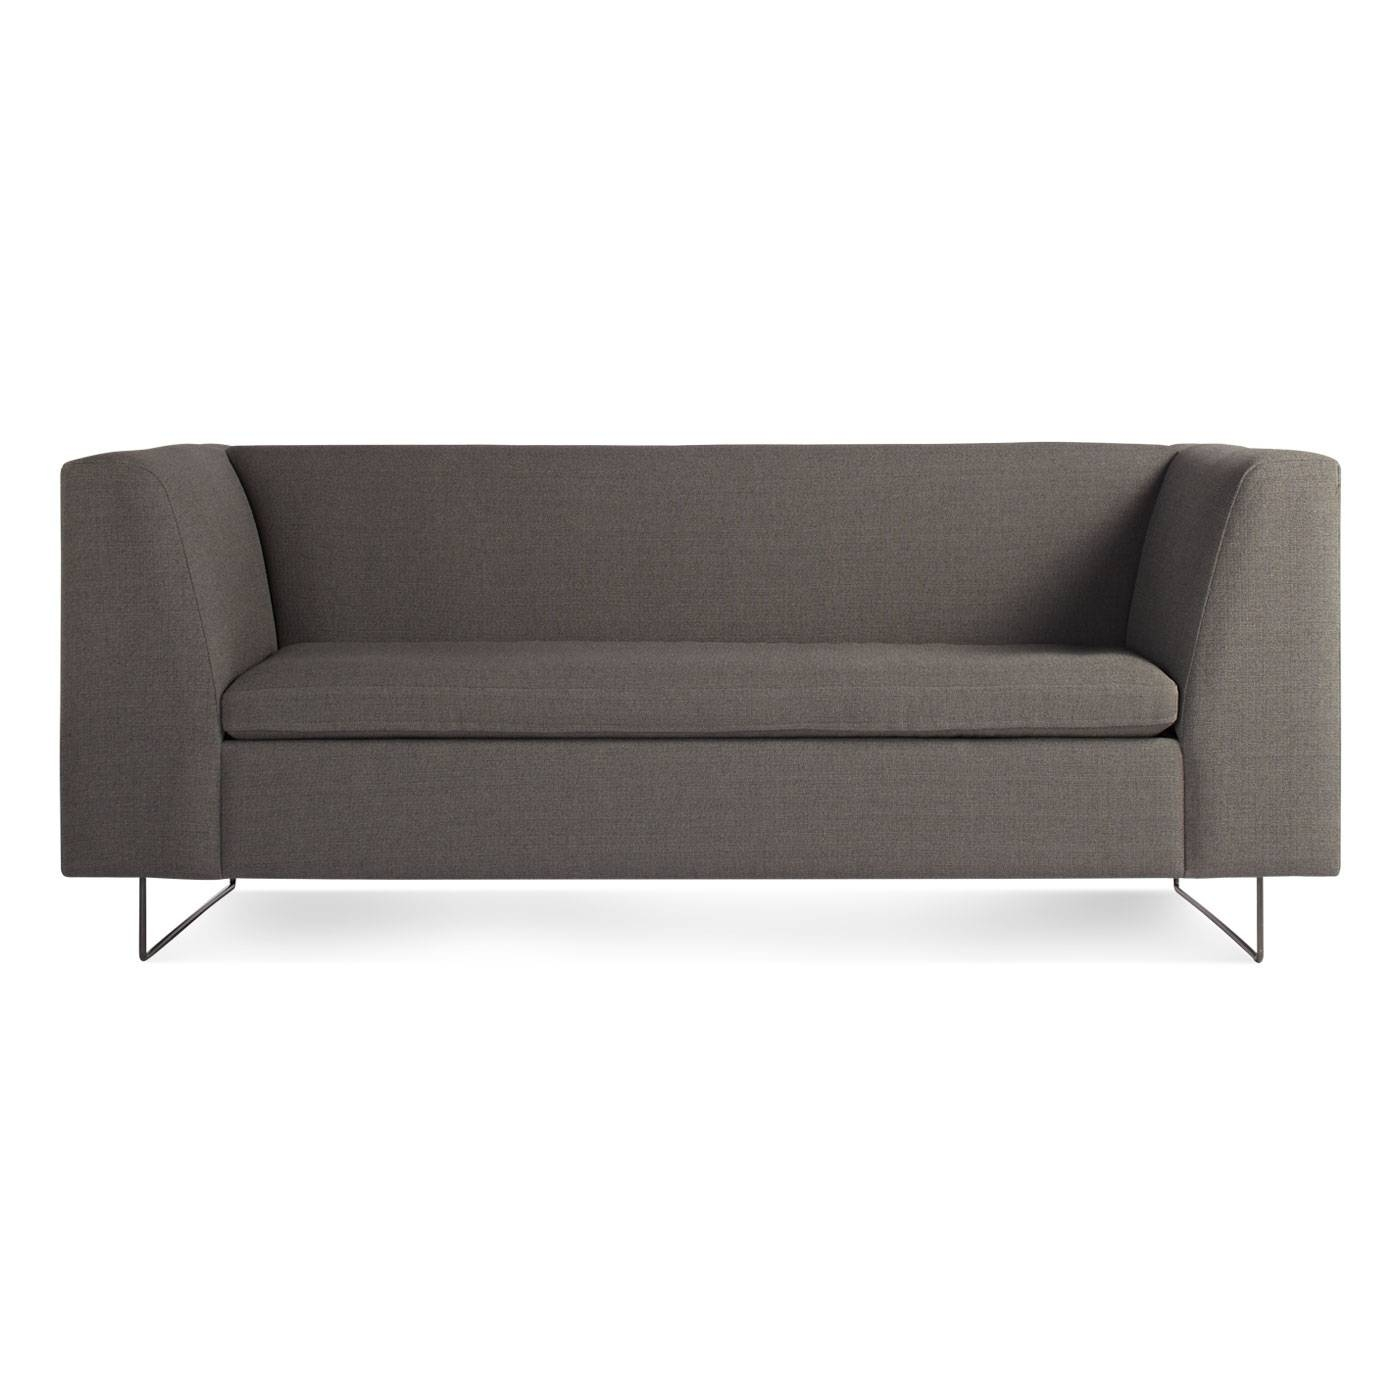 Bonnie Tight Back Sofa – Small Modern Sofa | Blu Dot In Small Modern Sofas (View 1 of 15)